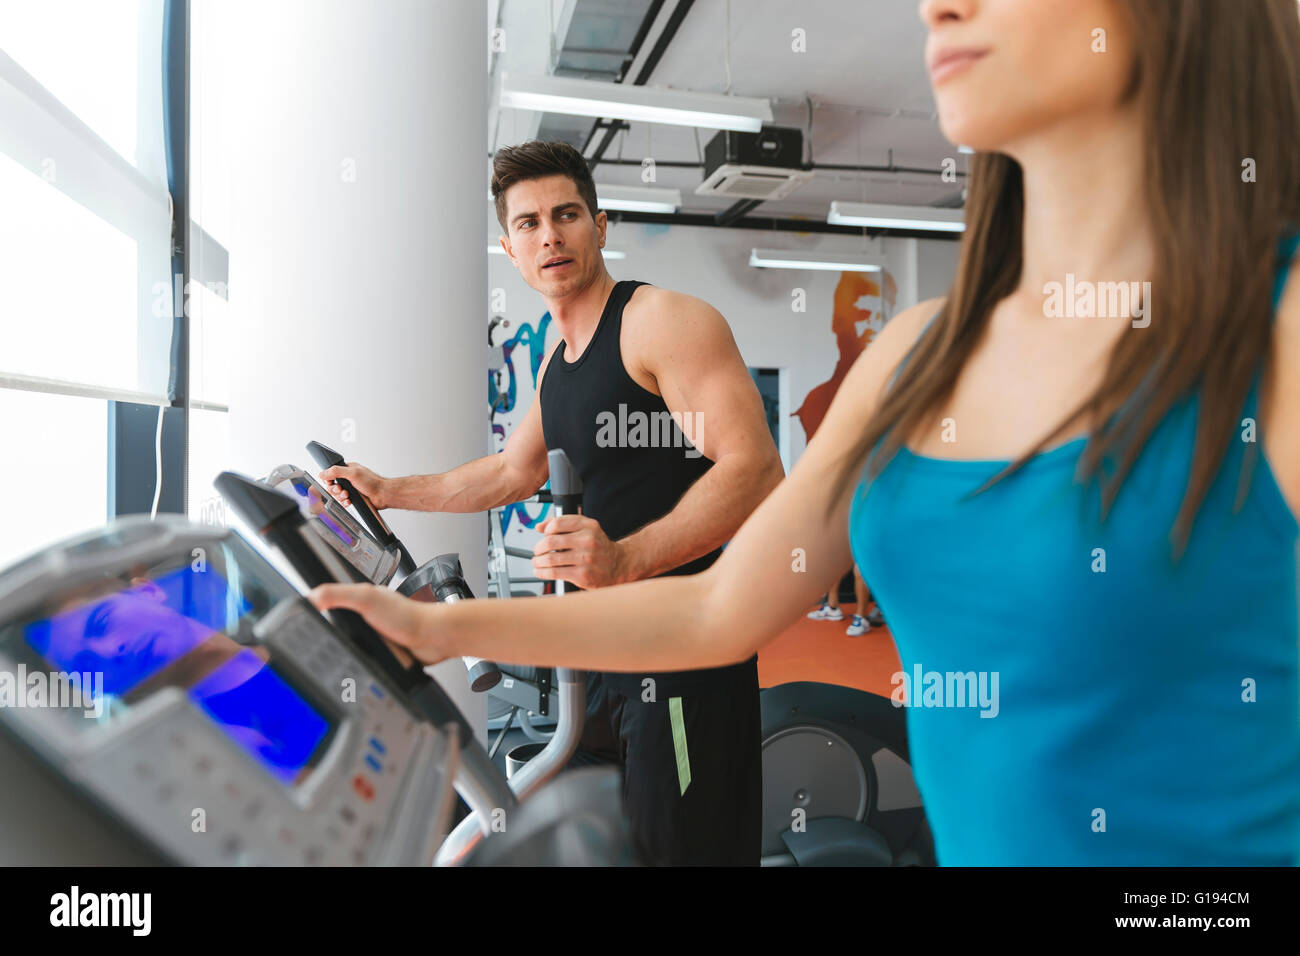 People exercising in gym to keep body in shape - Stock Image